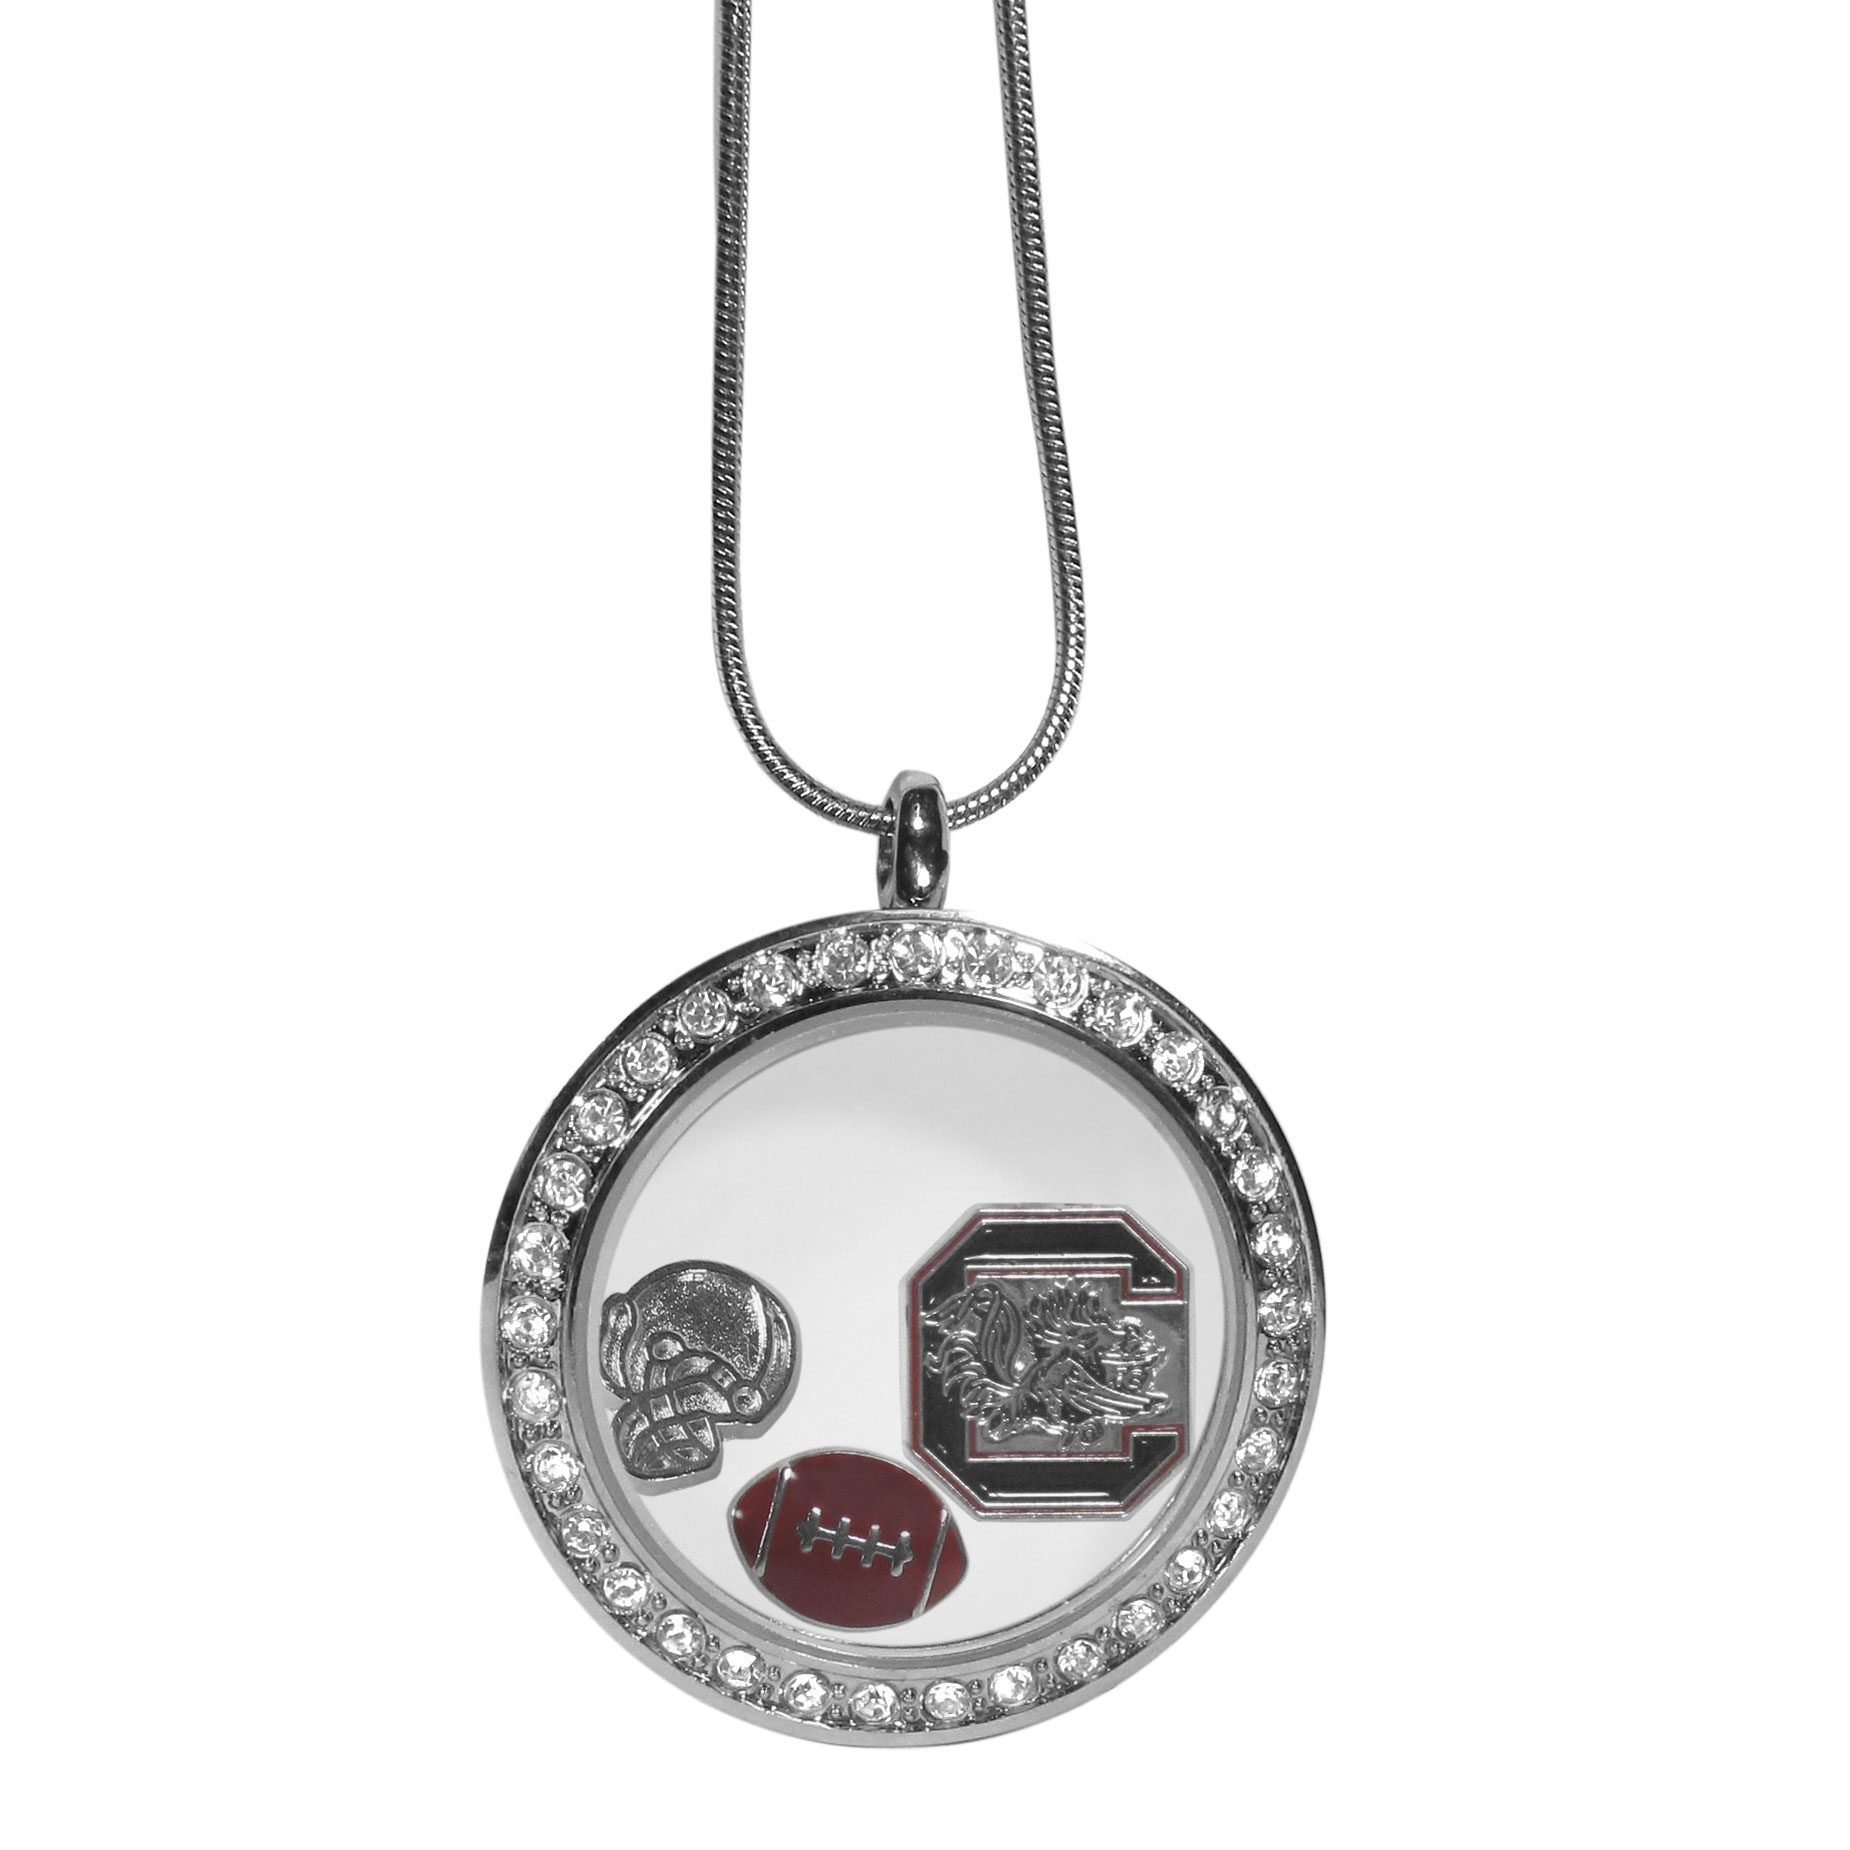 S. Carolina Gamecocks Locket Necklace - We have taken the classic floating charm locket and combined with licensed sports charms to create a must have fan necklace. The necklace comes with 3 charms; 1 S. Carolina Gamecocks charm, one football charm and one helmet charm. The charms float in a beautiful locket that has a strong magnetic closure with a rhinestone border. The locket comes on an 18 inch snake chain with 2 inch extender.